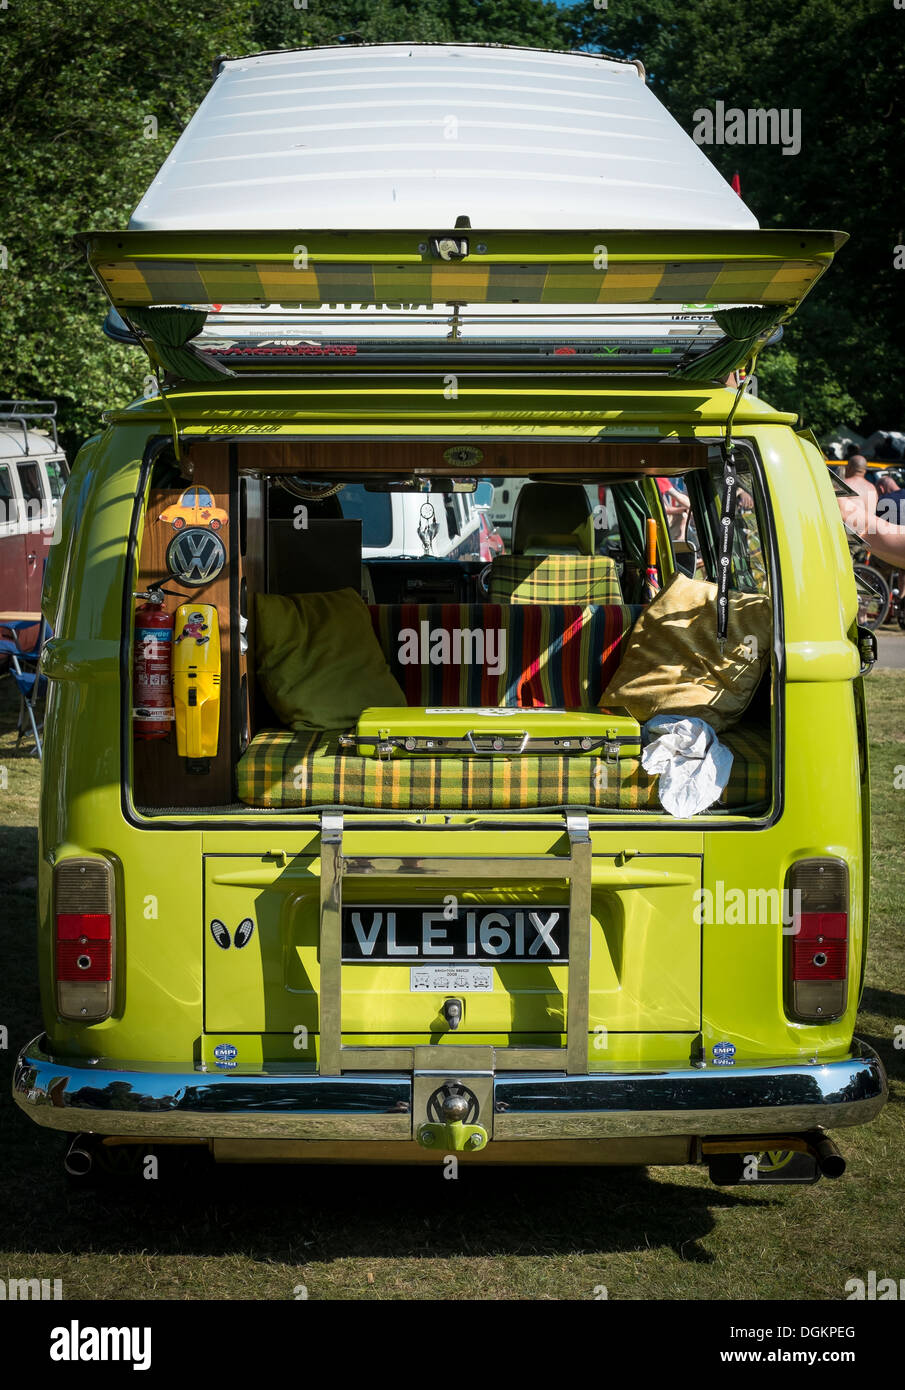 A vehicle on display at the Dubs At The Hall VW festival. - Stock Image